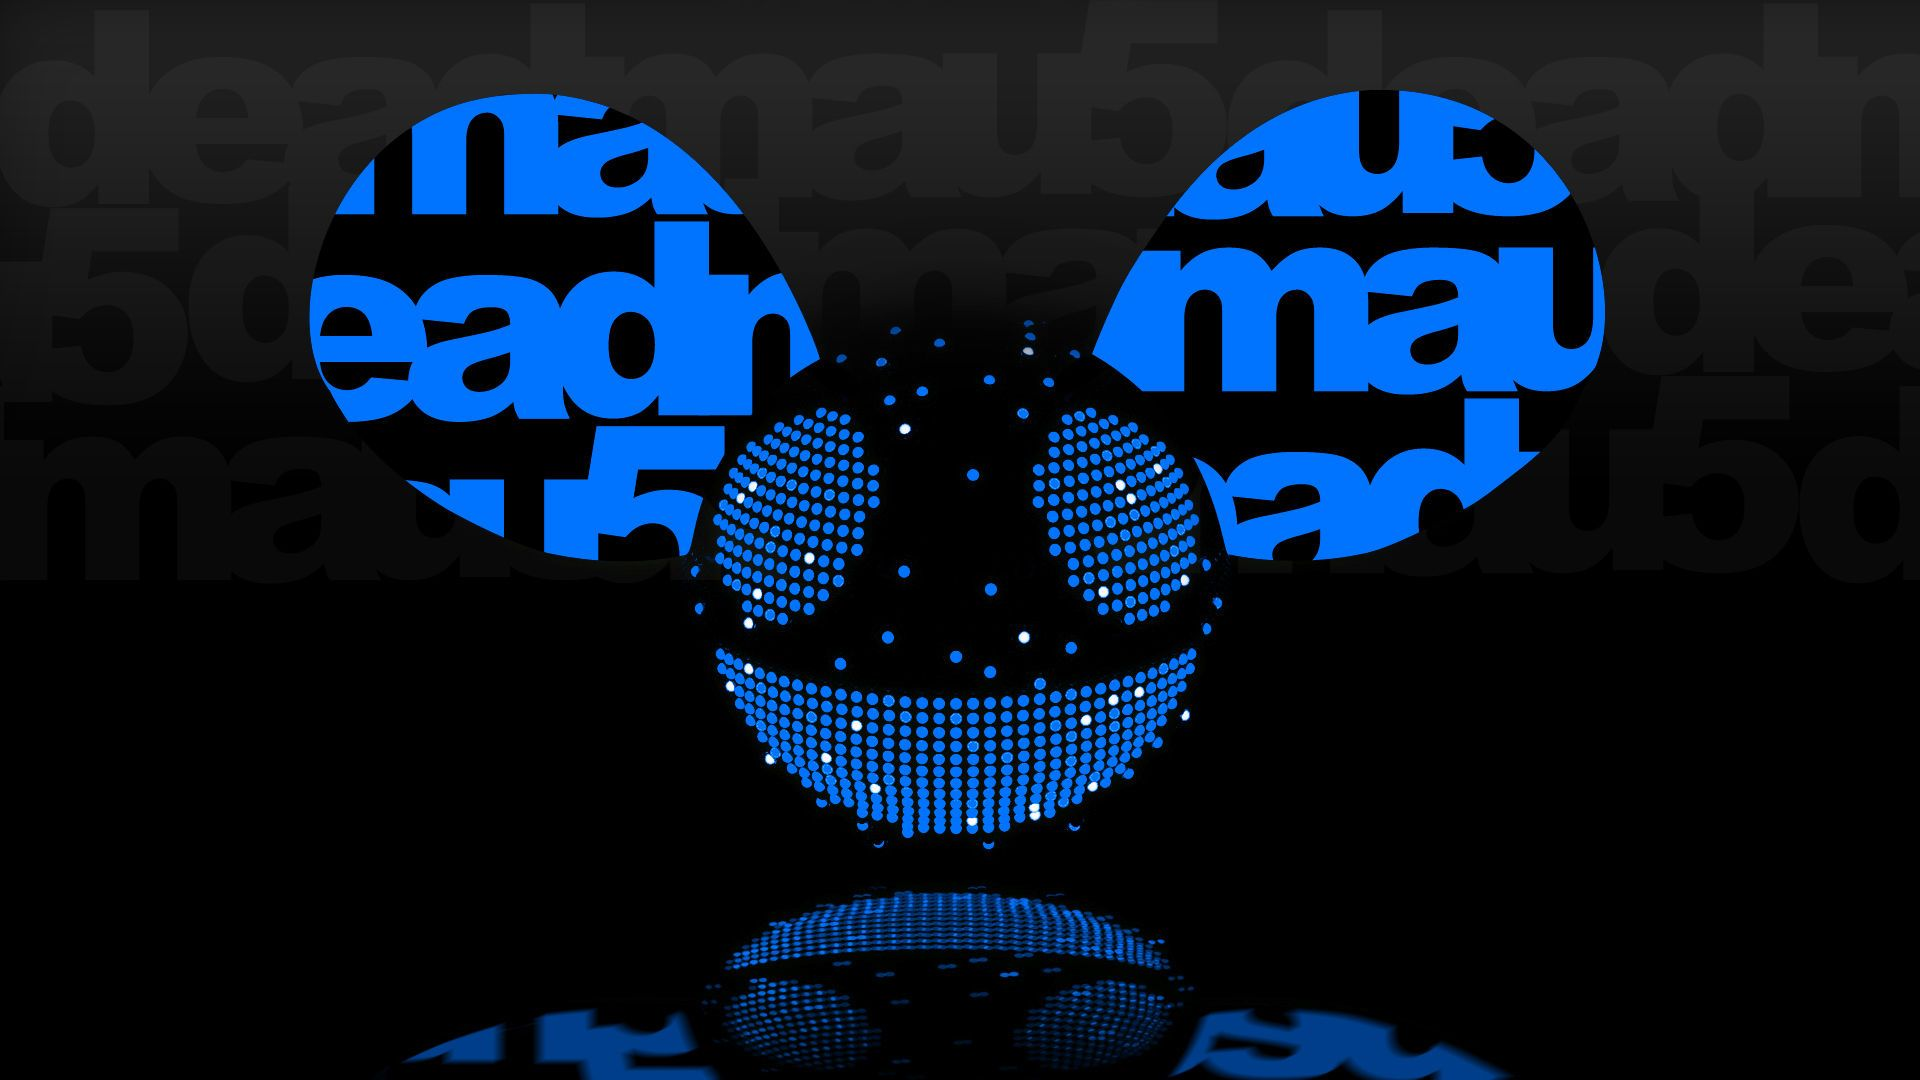 1920x1080 Deadmau5 Wallpaper #6867118